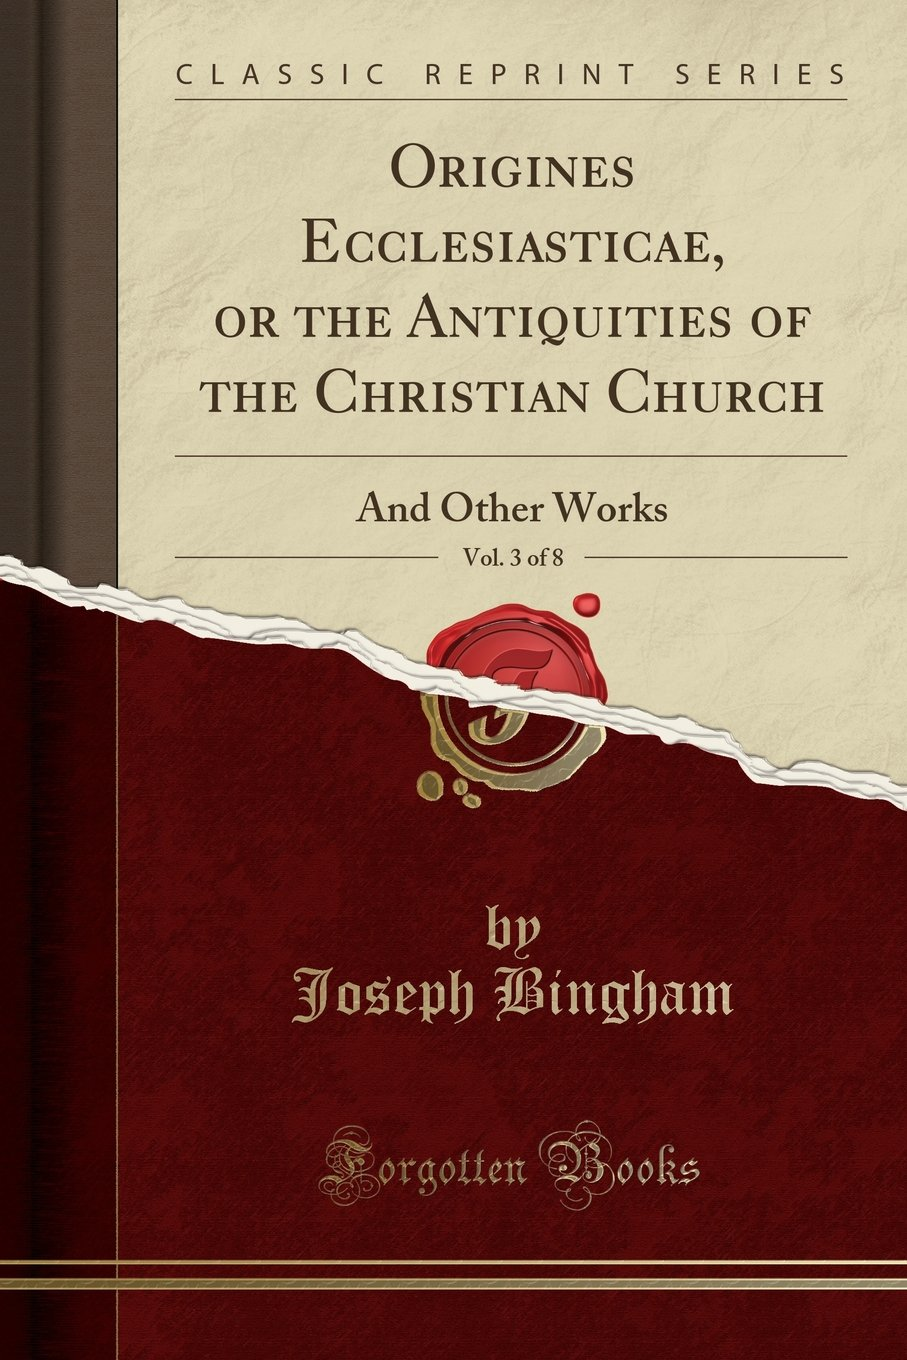 Read Online Origines Ecclesiasticae, or the Antiquities of the Christian Church, Vol. 3 of 8: And Other Works (Classic Reprint) PDF